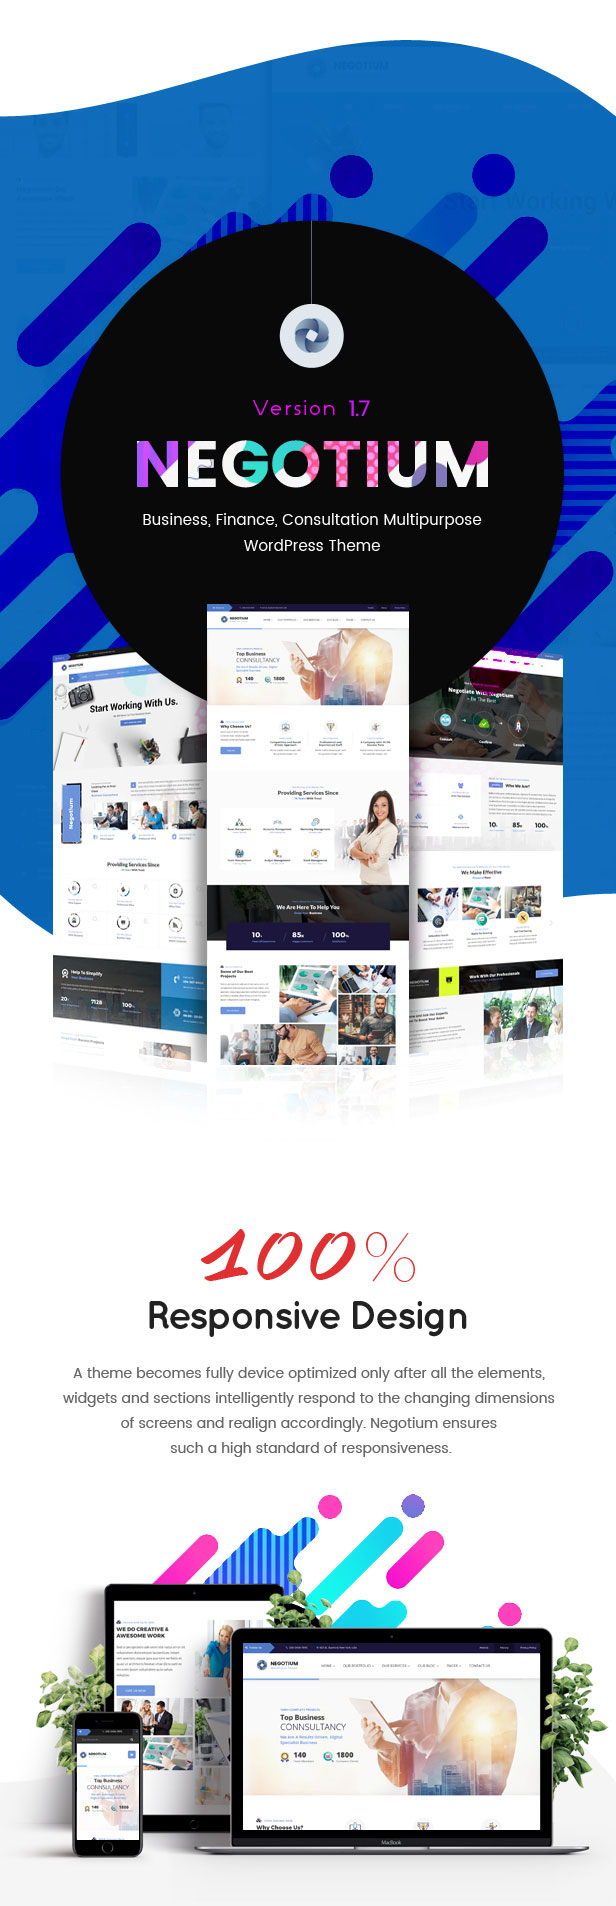 Negotium - Multipurpose Business WordPress Template - 2